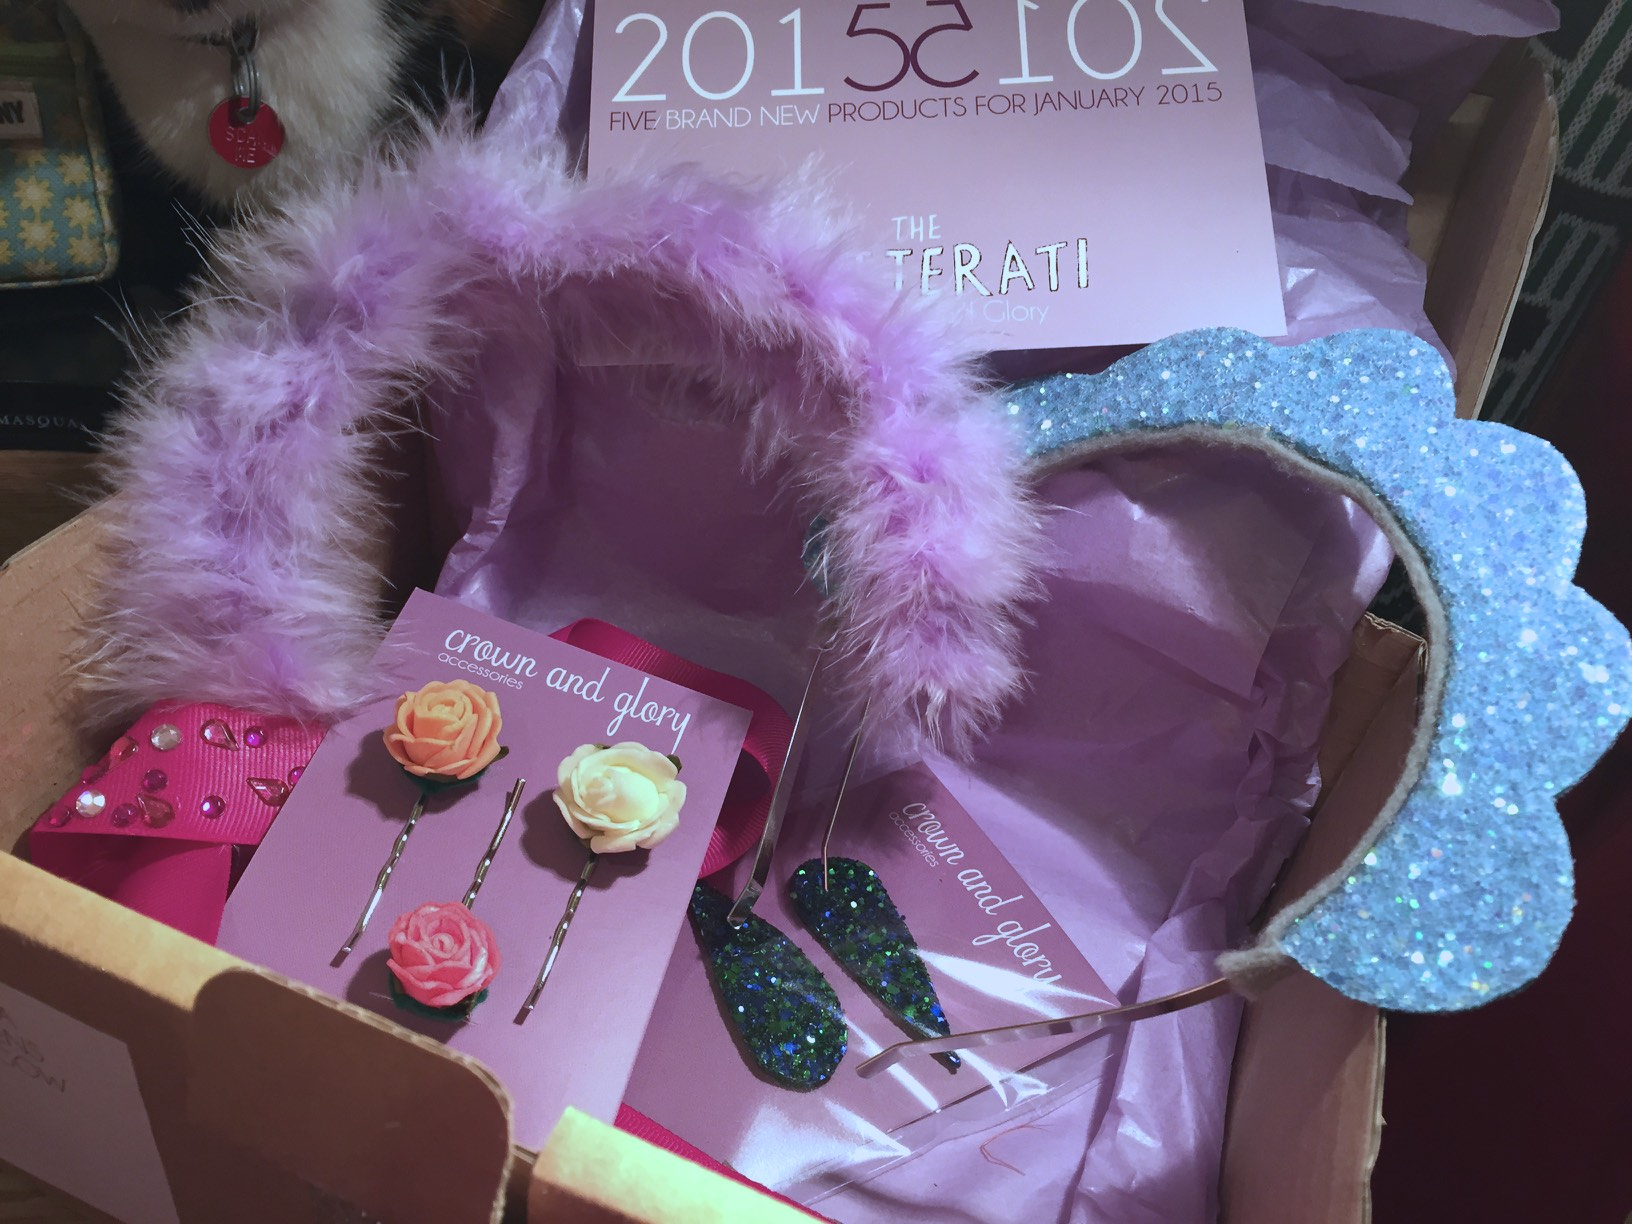 Crown and Glory Glitterati subscription box - January 2015